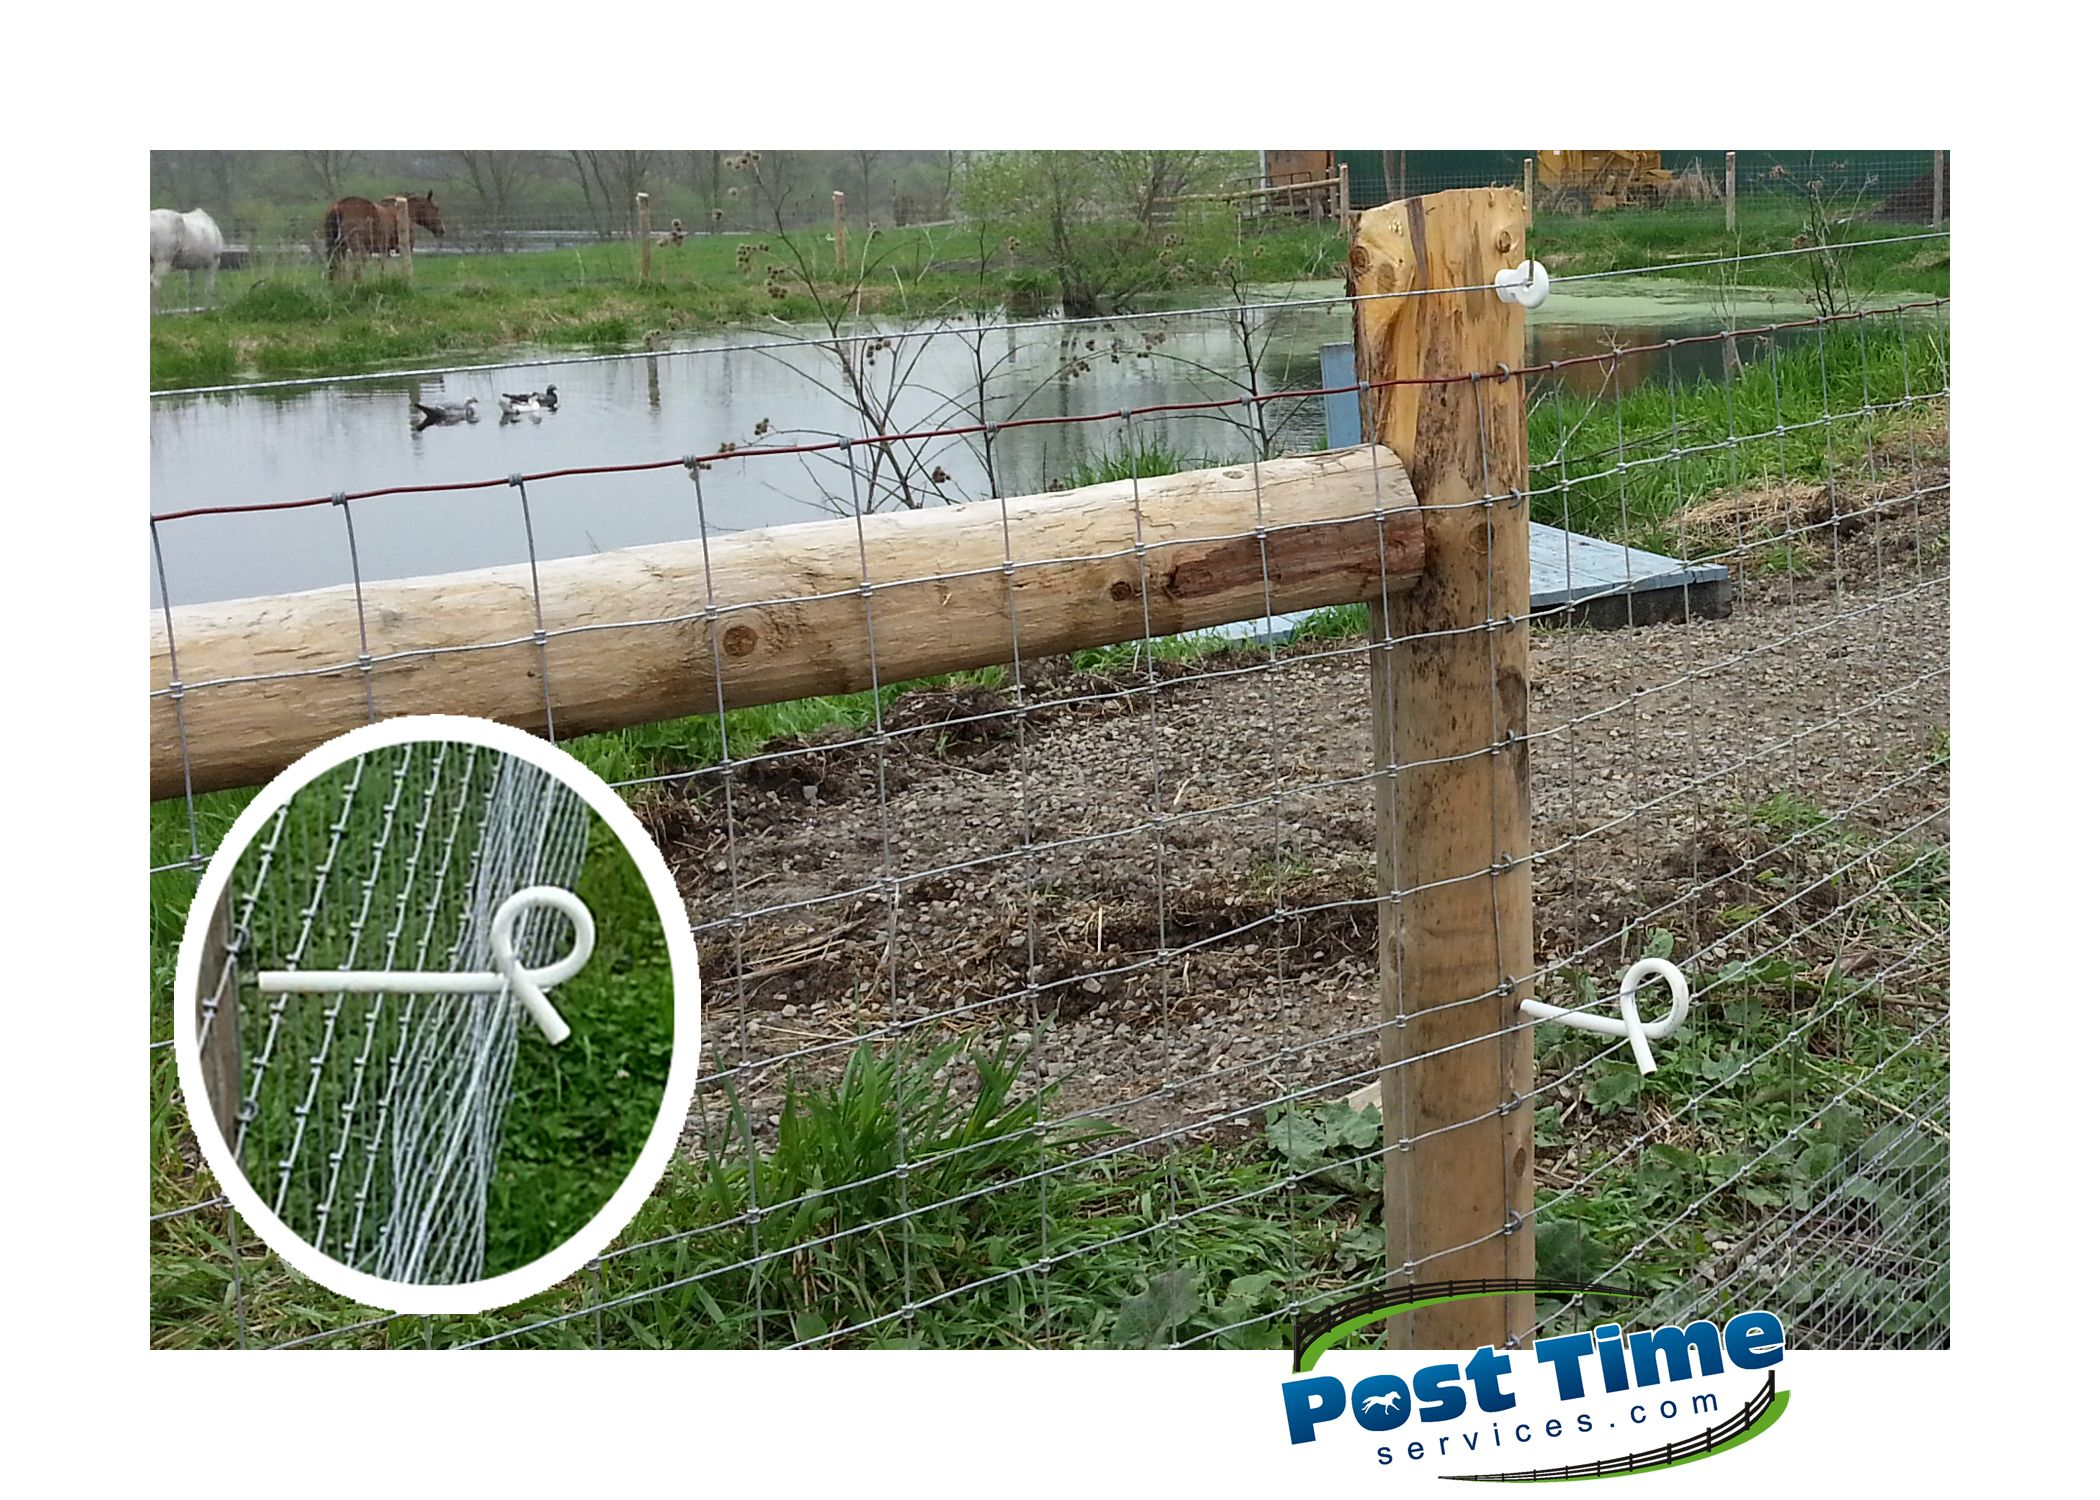 This Farm Fence 4x4 Around Pond Has Added Welded Wire On